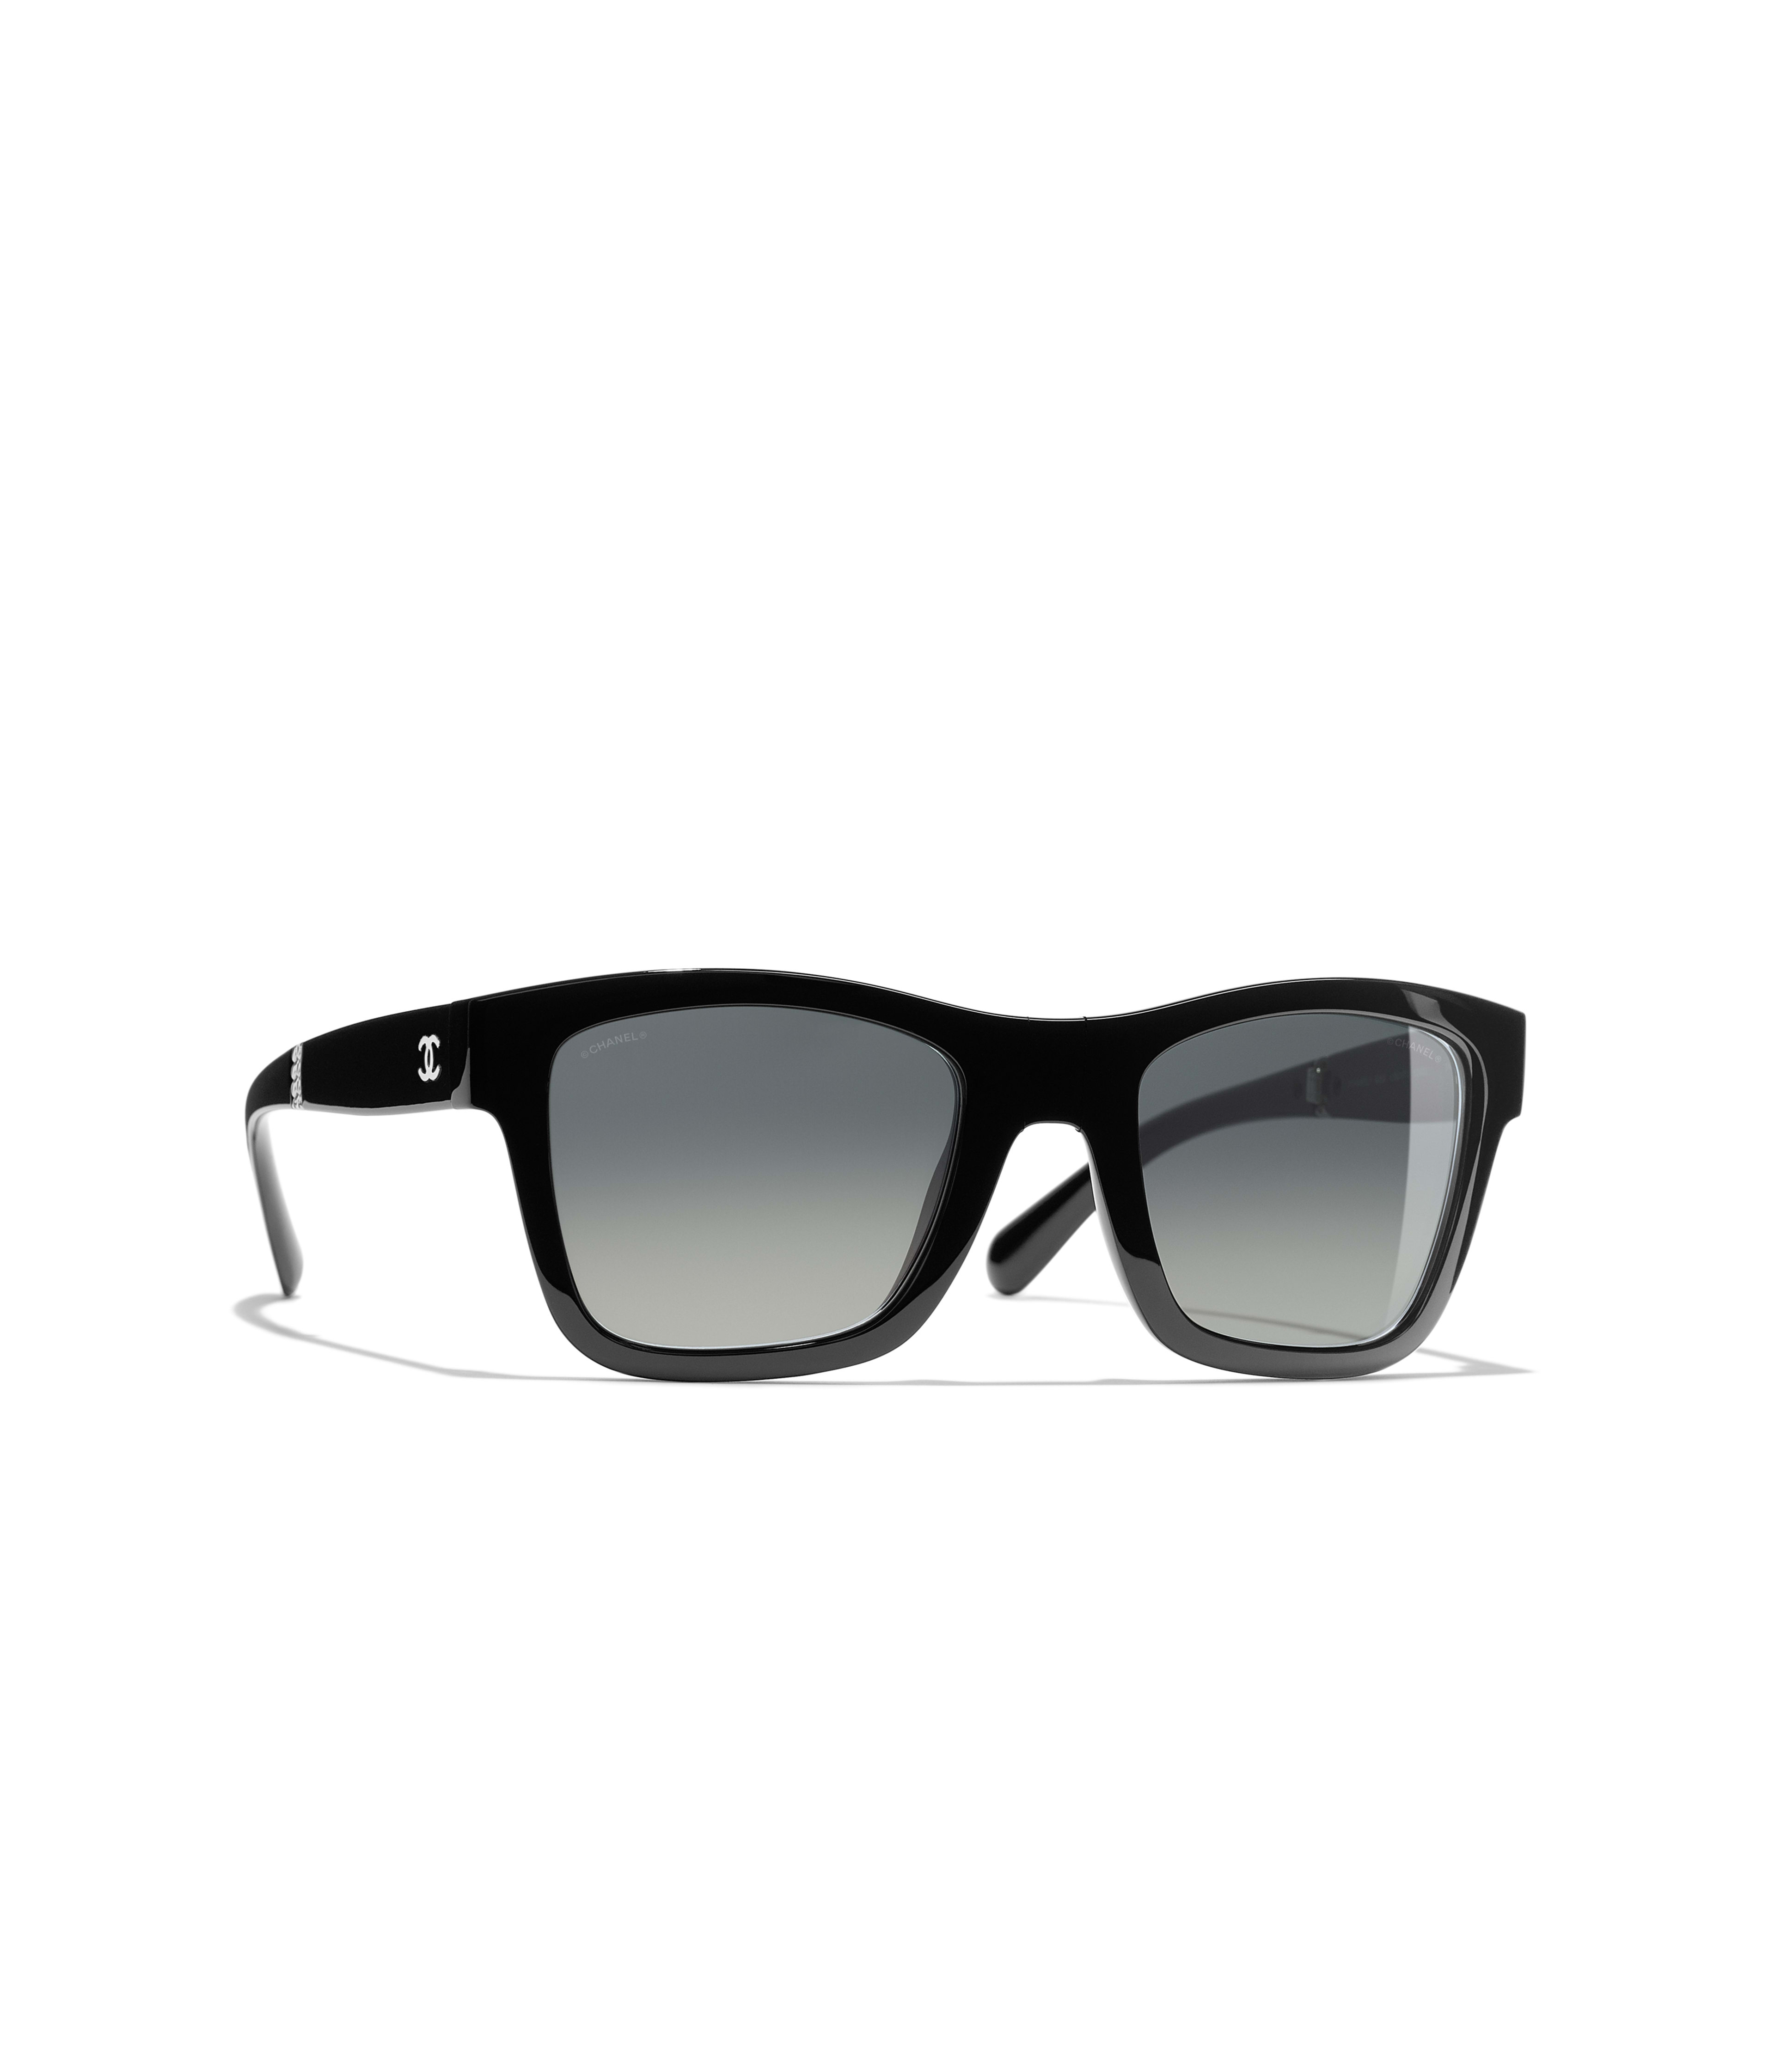 e6d4b38929db Square Sunglasses Ref. 6053 C501 71